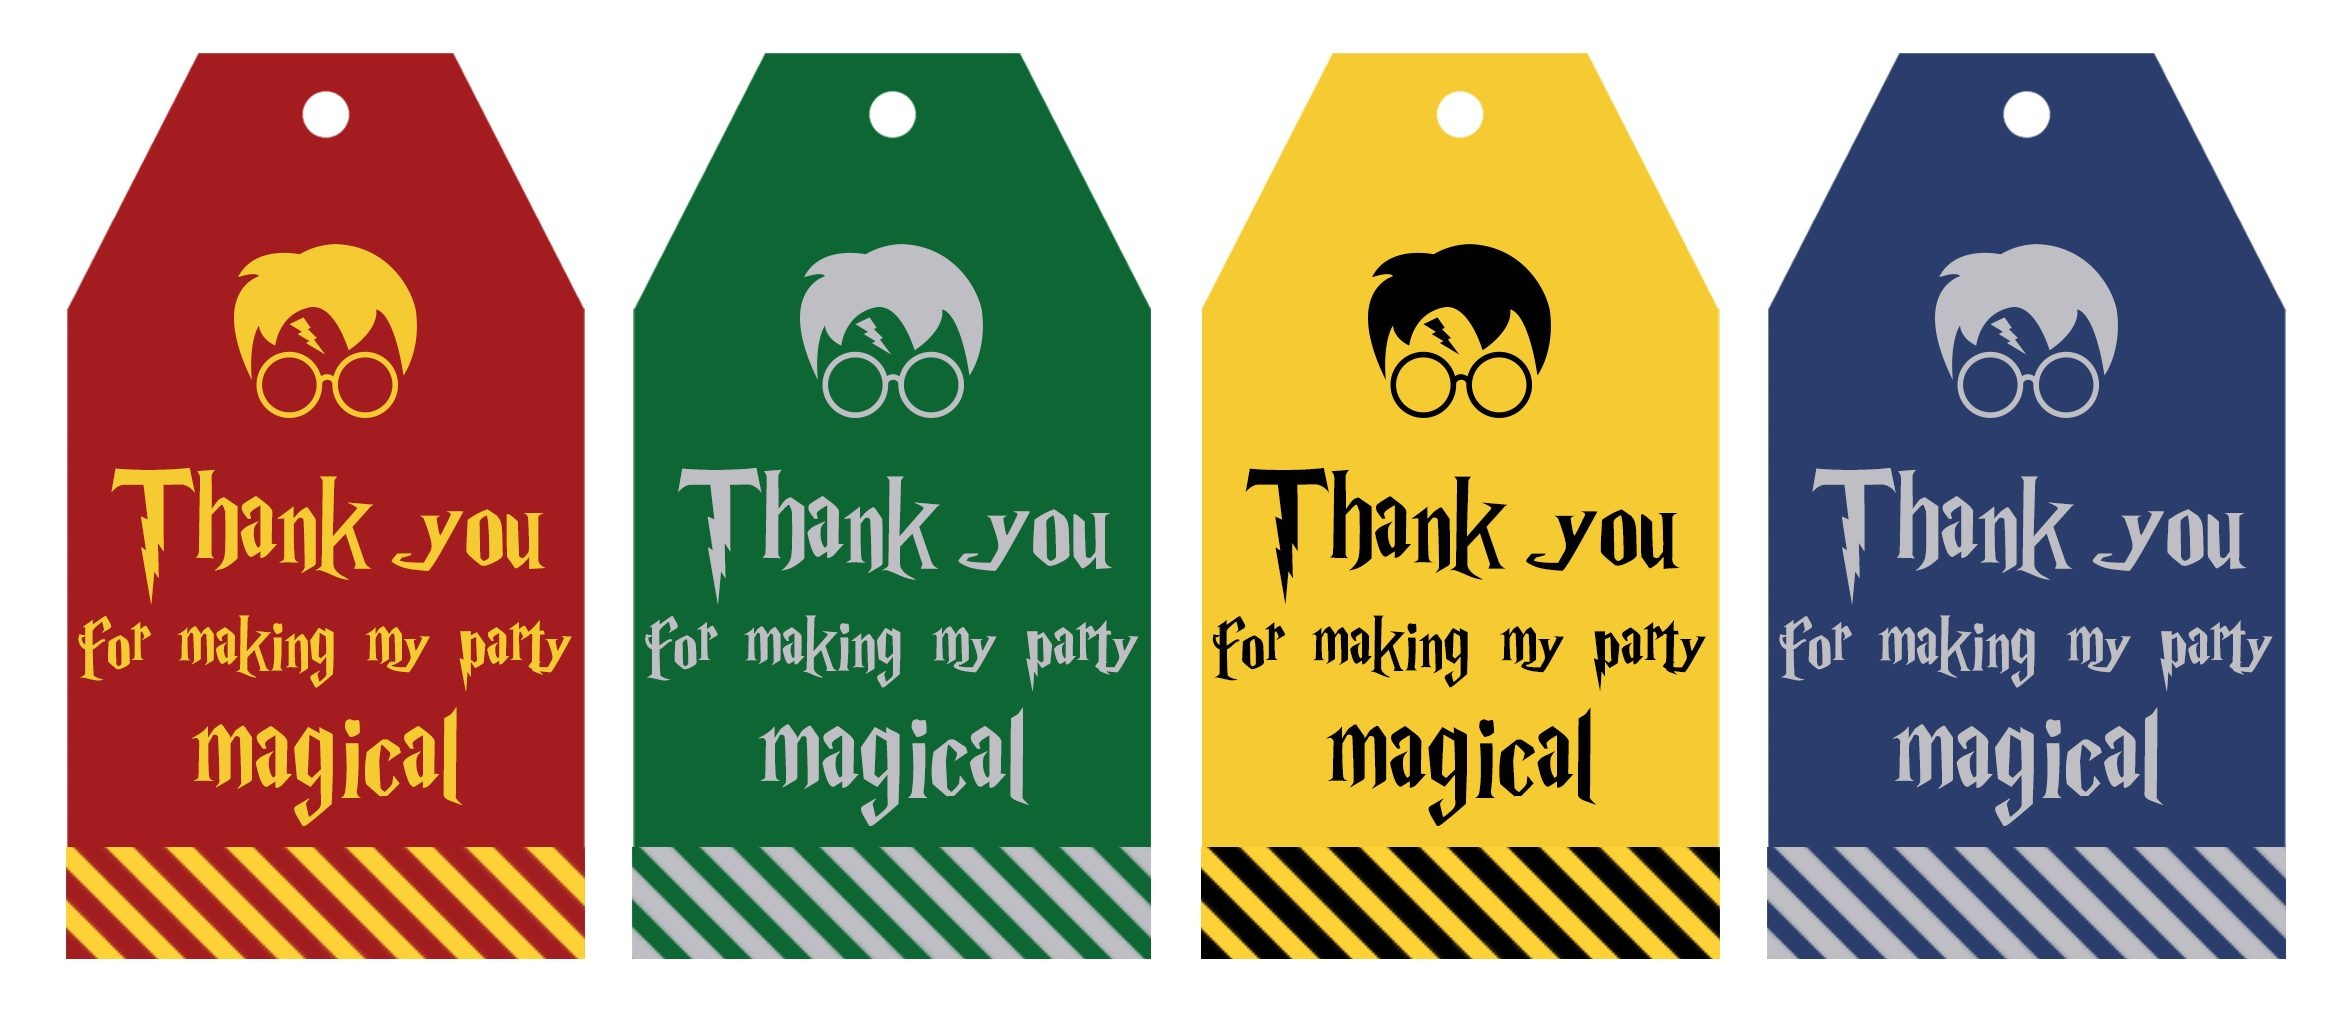 Free Printable Harry Potter Party Favor Gift Tags - Lovely Planner - Free Printable Thank You Tags For Birthdays